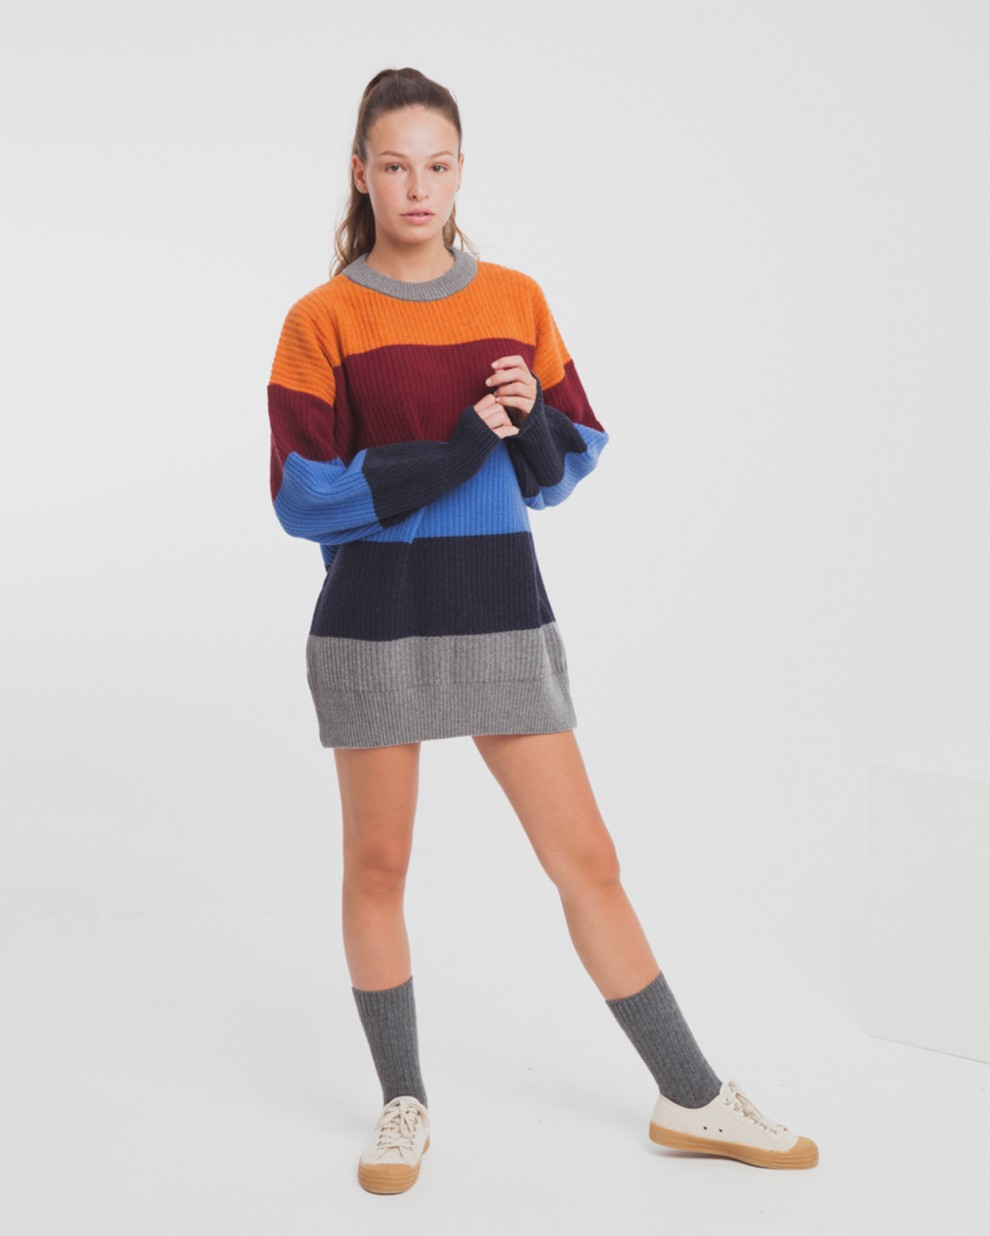 Cabernet Stripes Oversized Knit